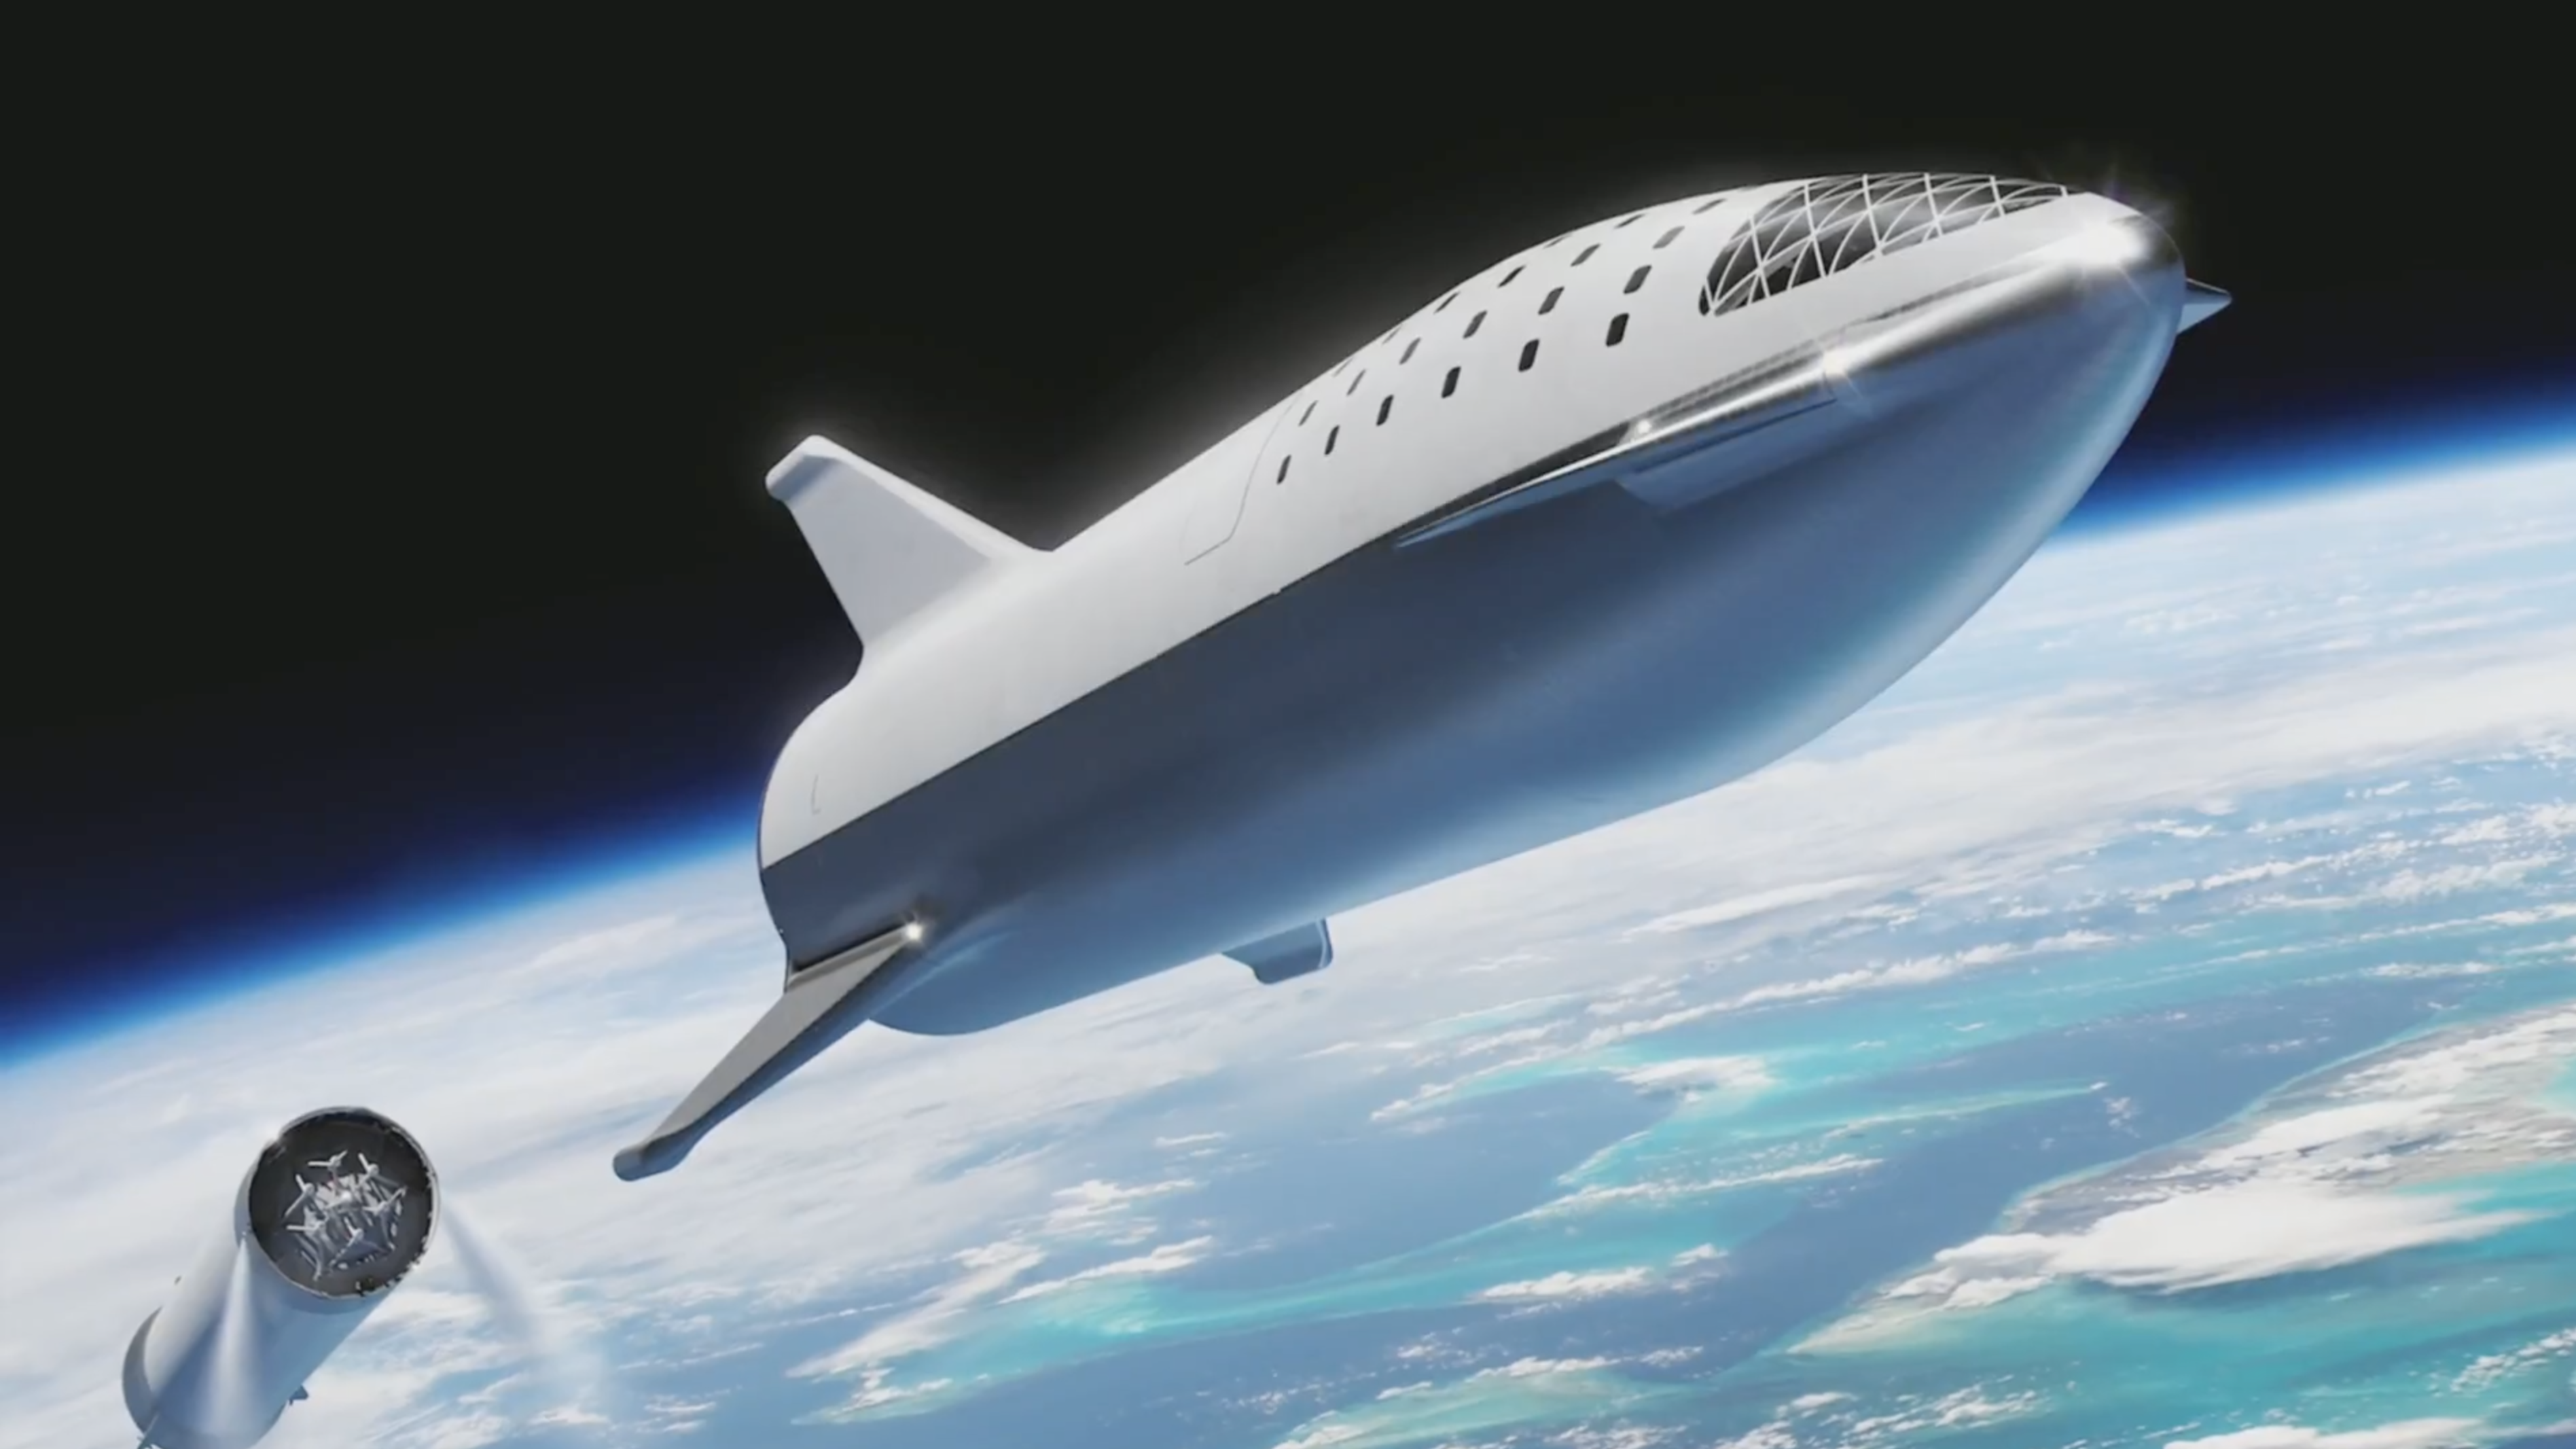 SpaceX's BFR moon mission and billionaire Yusaku Maezawa: Things we learned